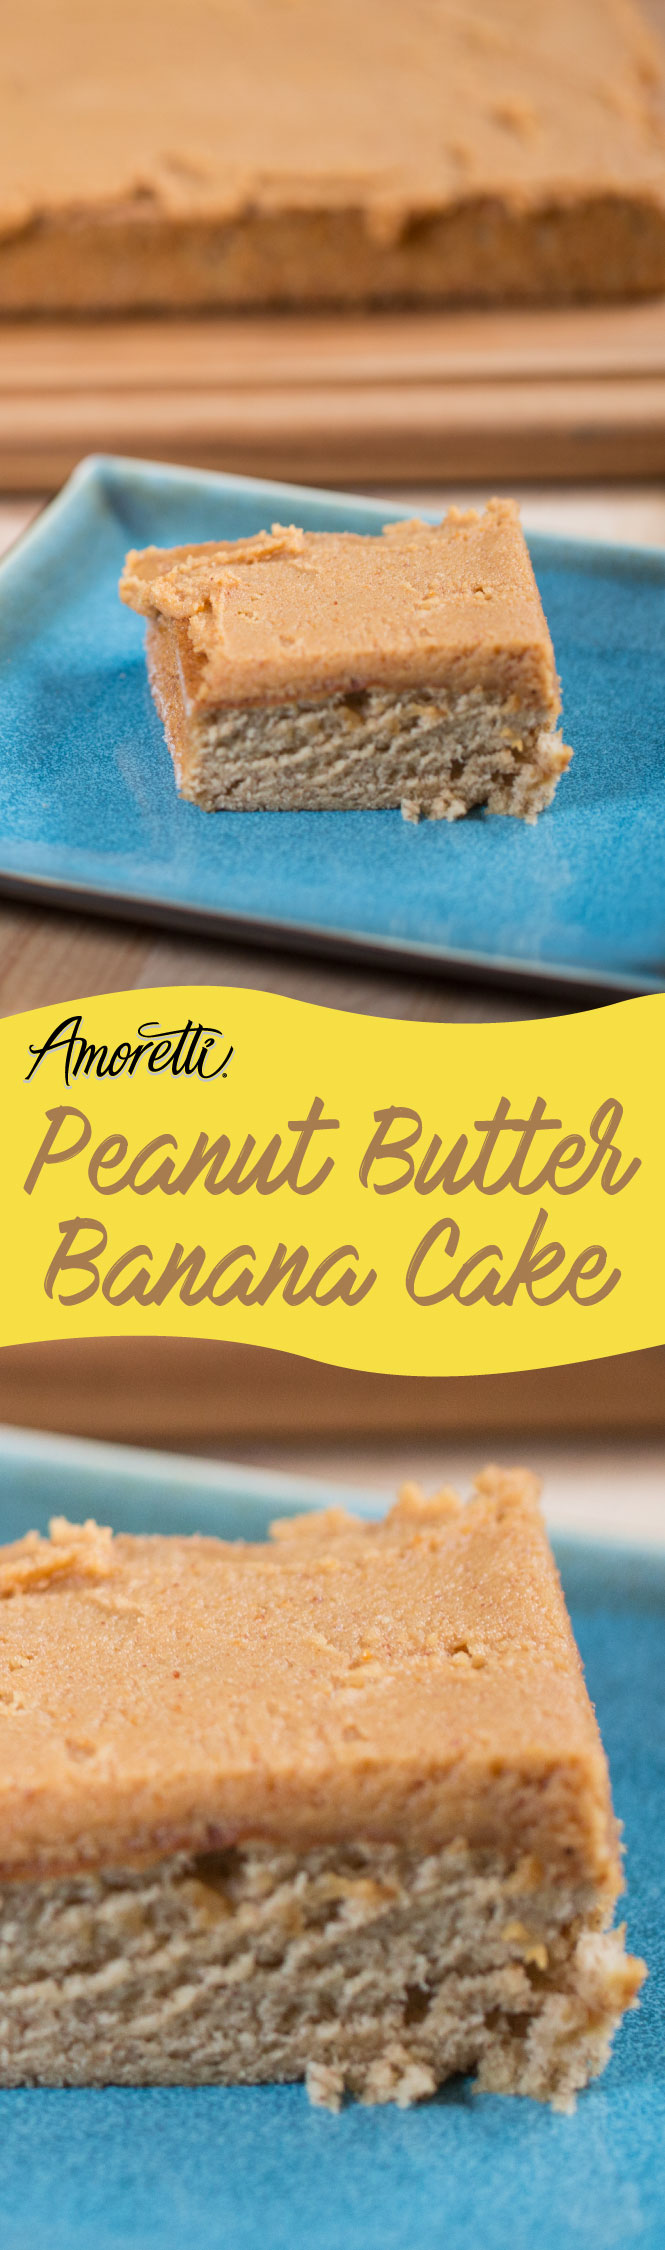 The greatest combo out there, peanut butter and banana, just got even better as a scrumptious cake!